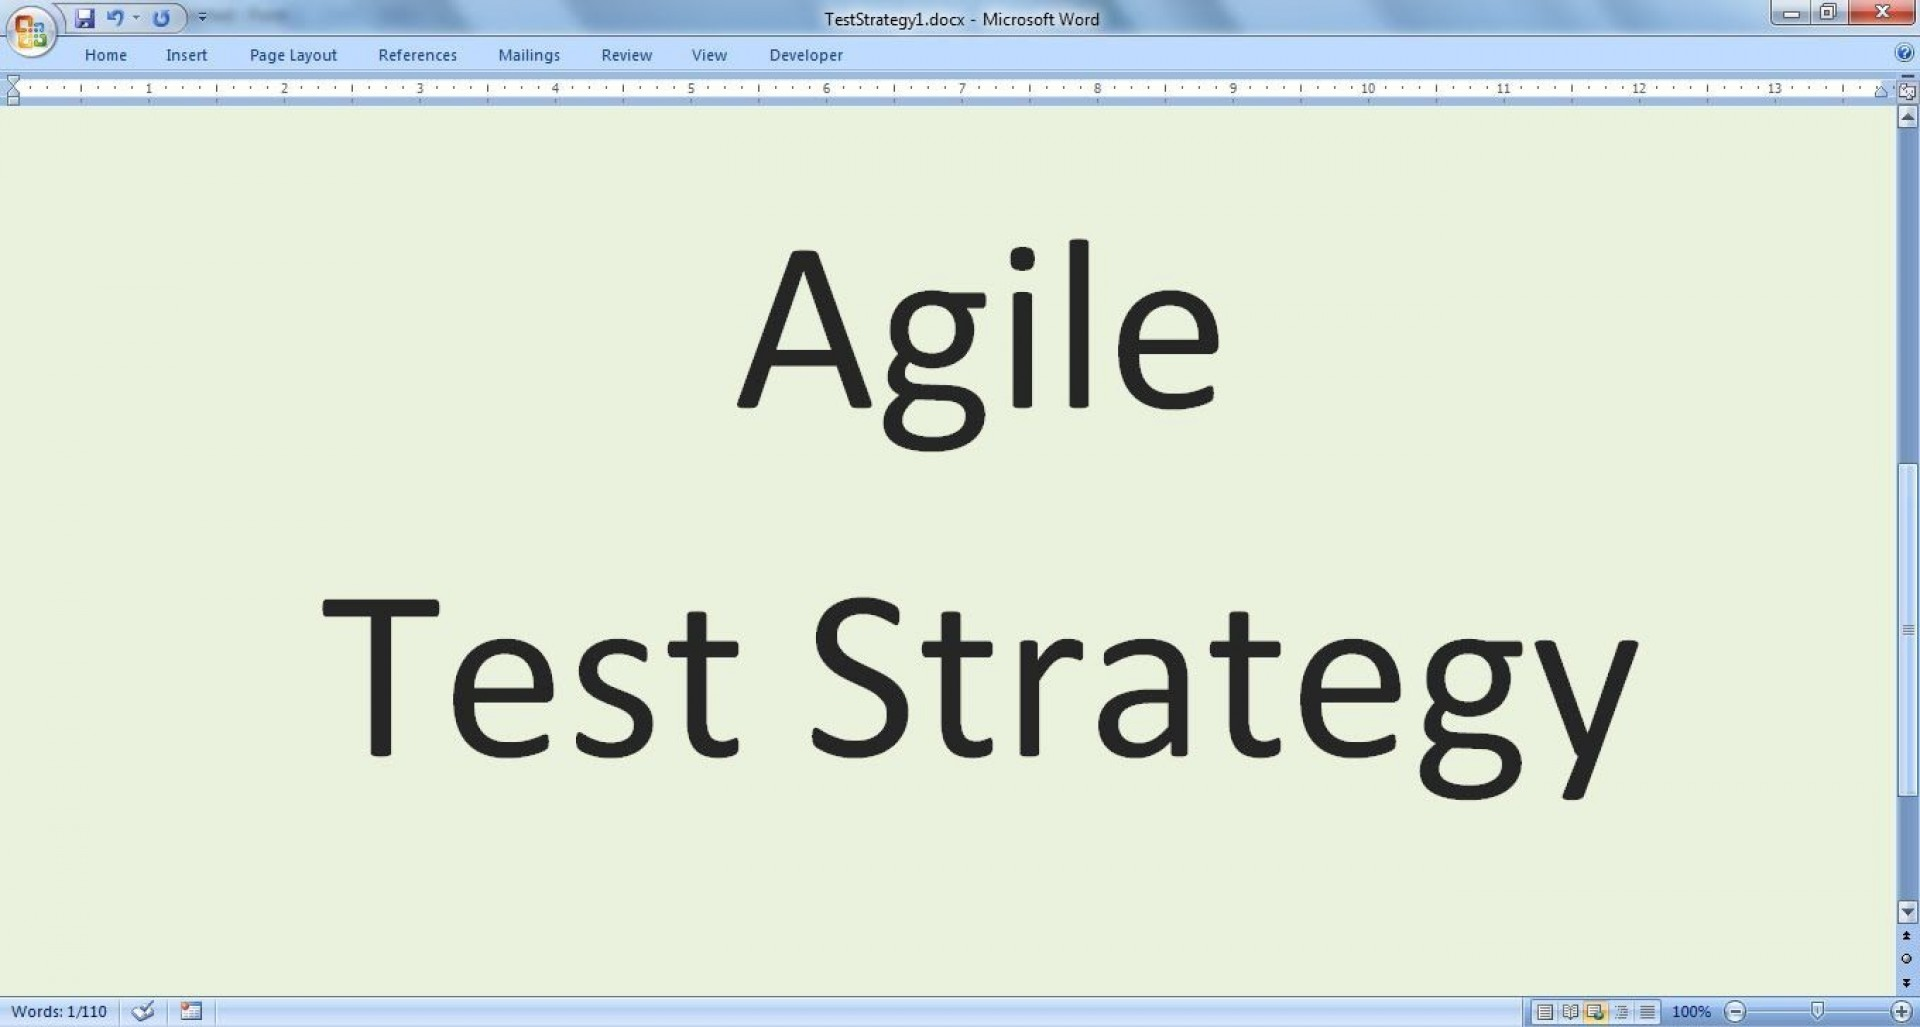 003 Stunning Agile Test Plan Template Photo  Word Example Document1920